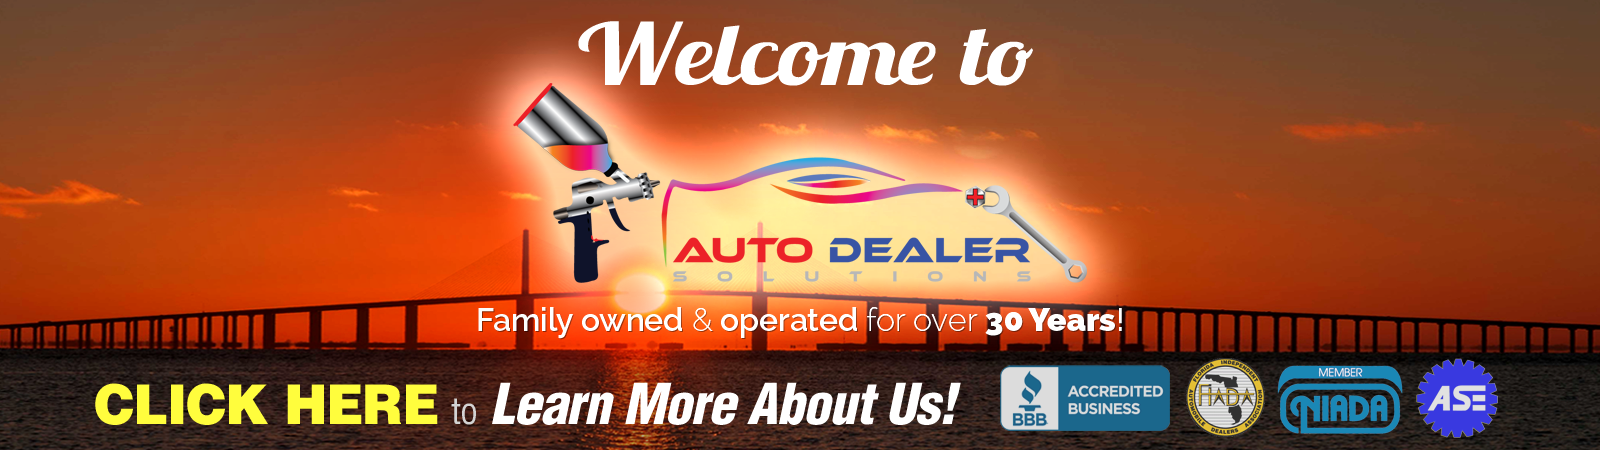 Auto Dealer Solutions :: Used Cars Palmetto FL, Pre-Owned Autos